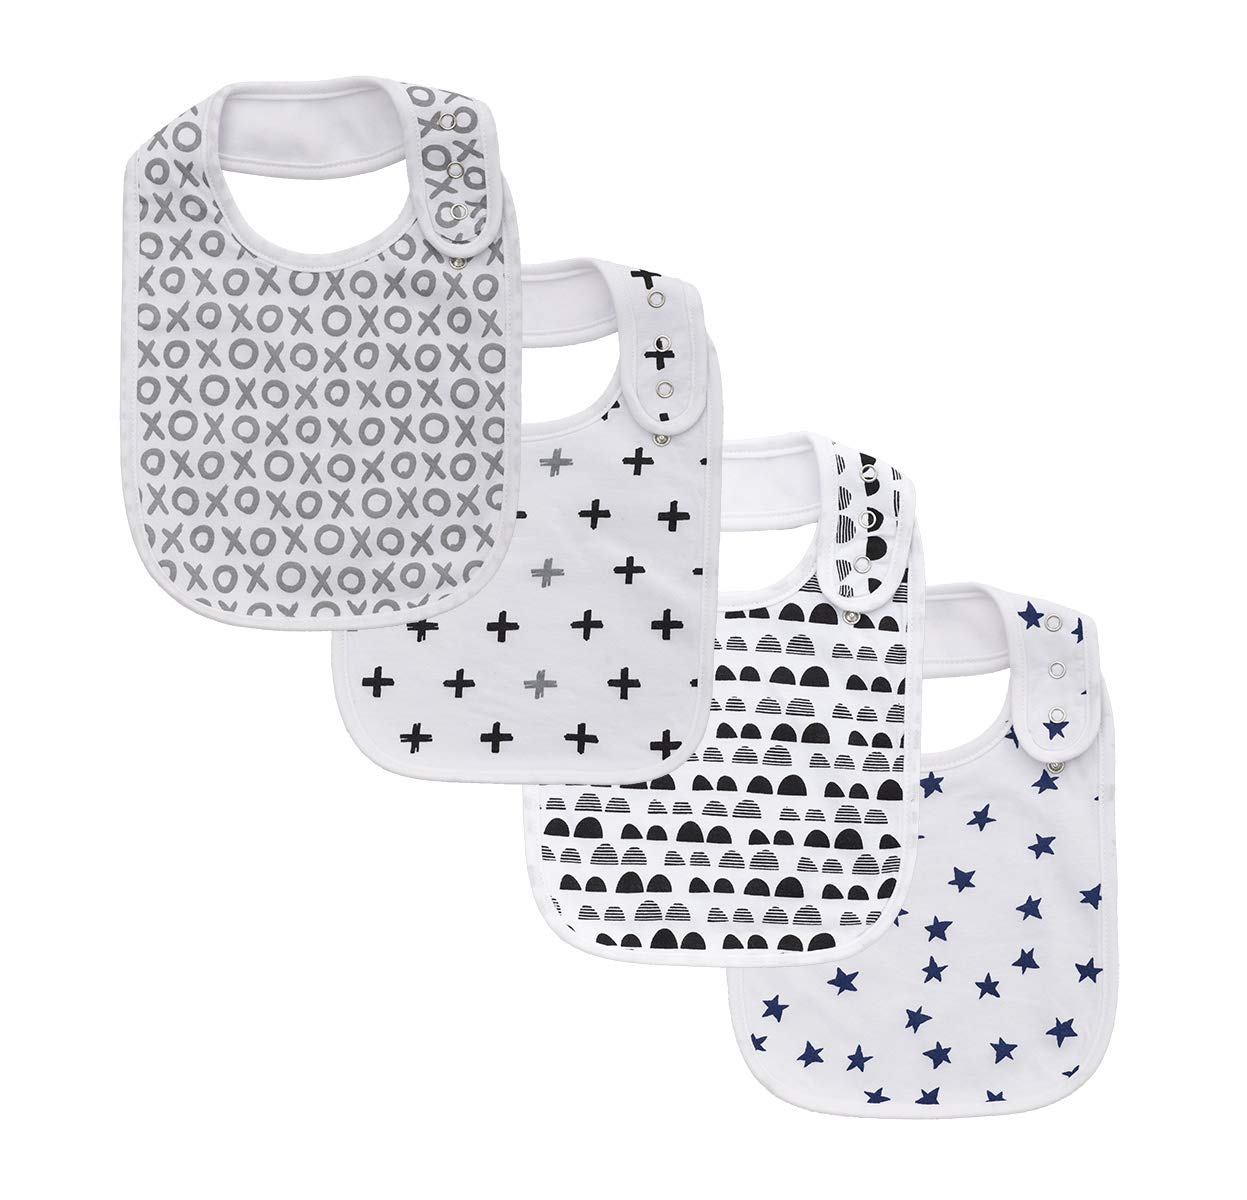 Large Snap Cotton Bibs for Baby Boys Feeding Drooling for 4 Pack…